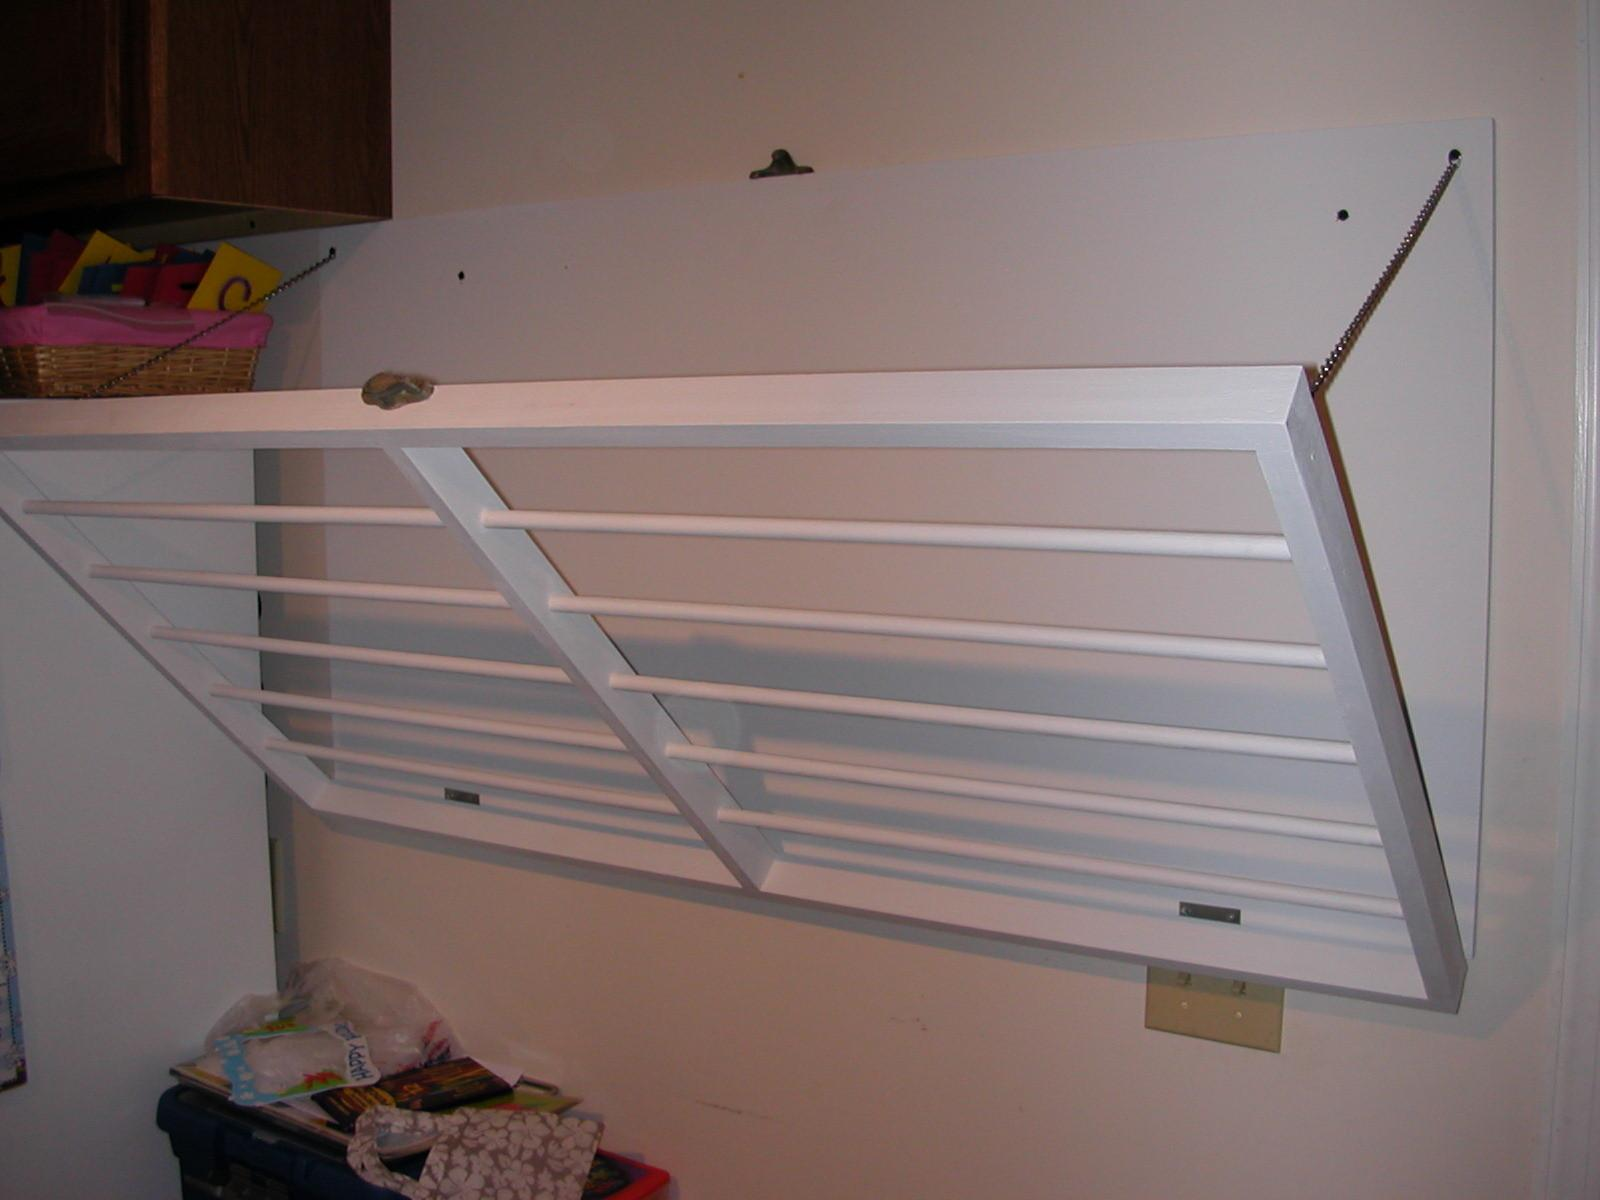 Laundry Room Drying Rack Wall Mounted Making